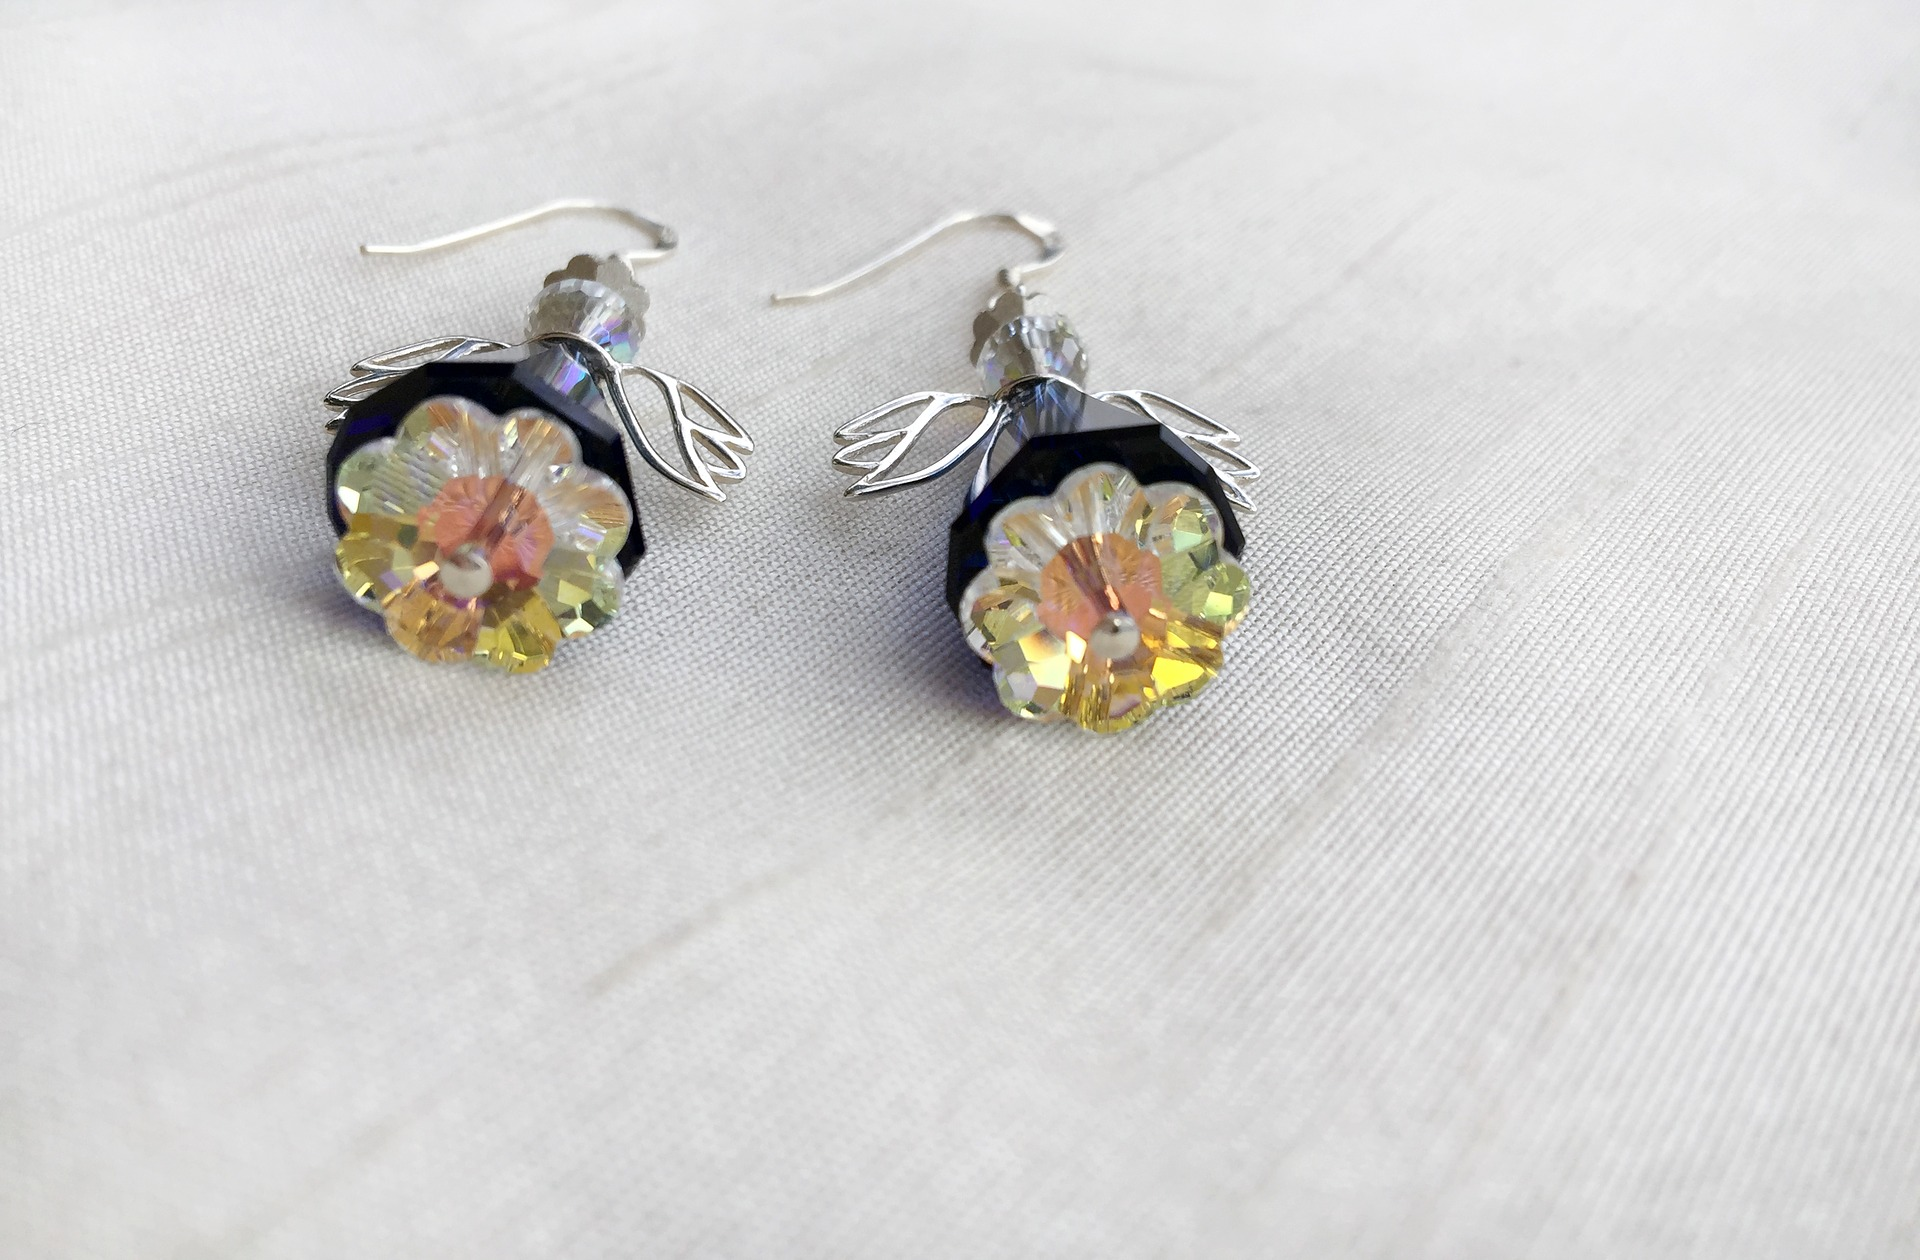 Choosing The Perfect Colored Gemstone For Your Earrings - dazzlingrock.com